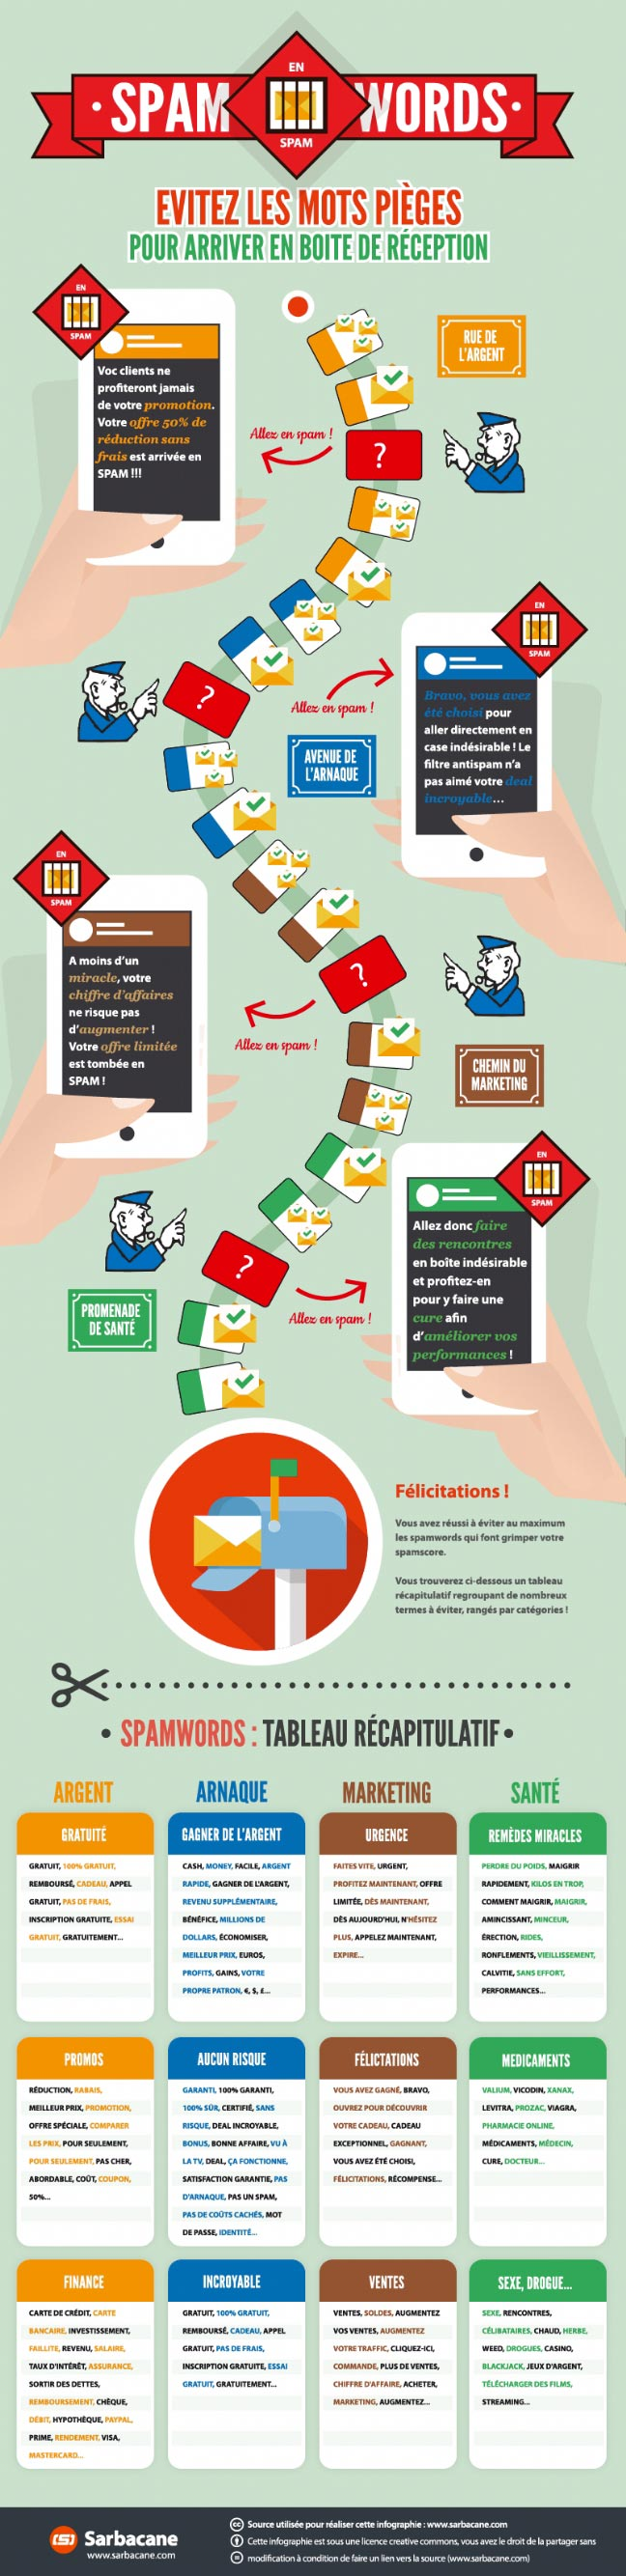 infographie-spamwords